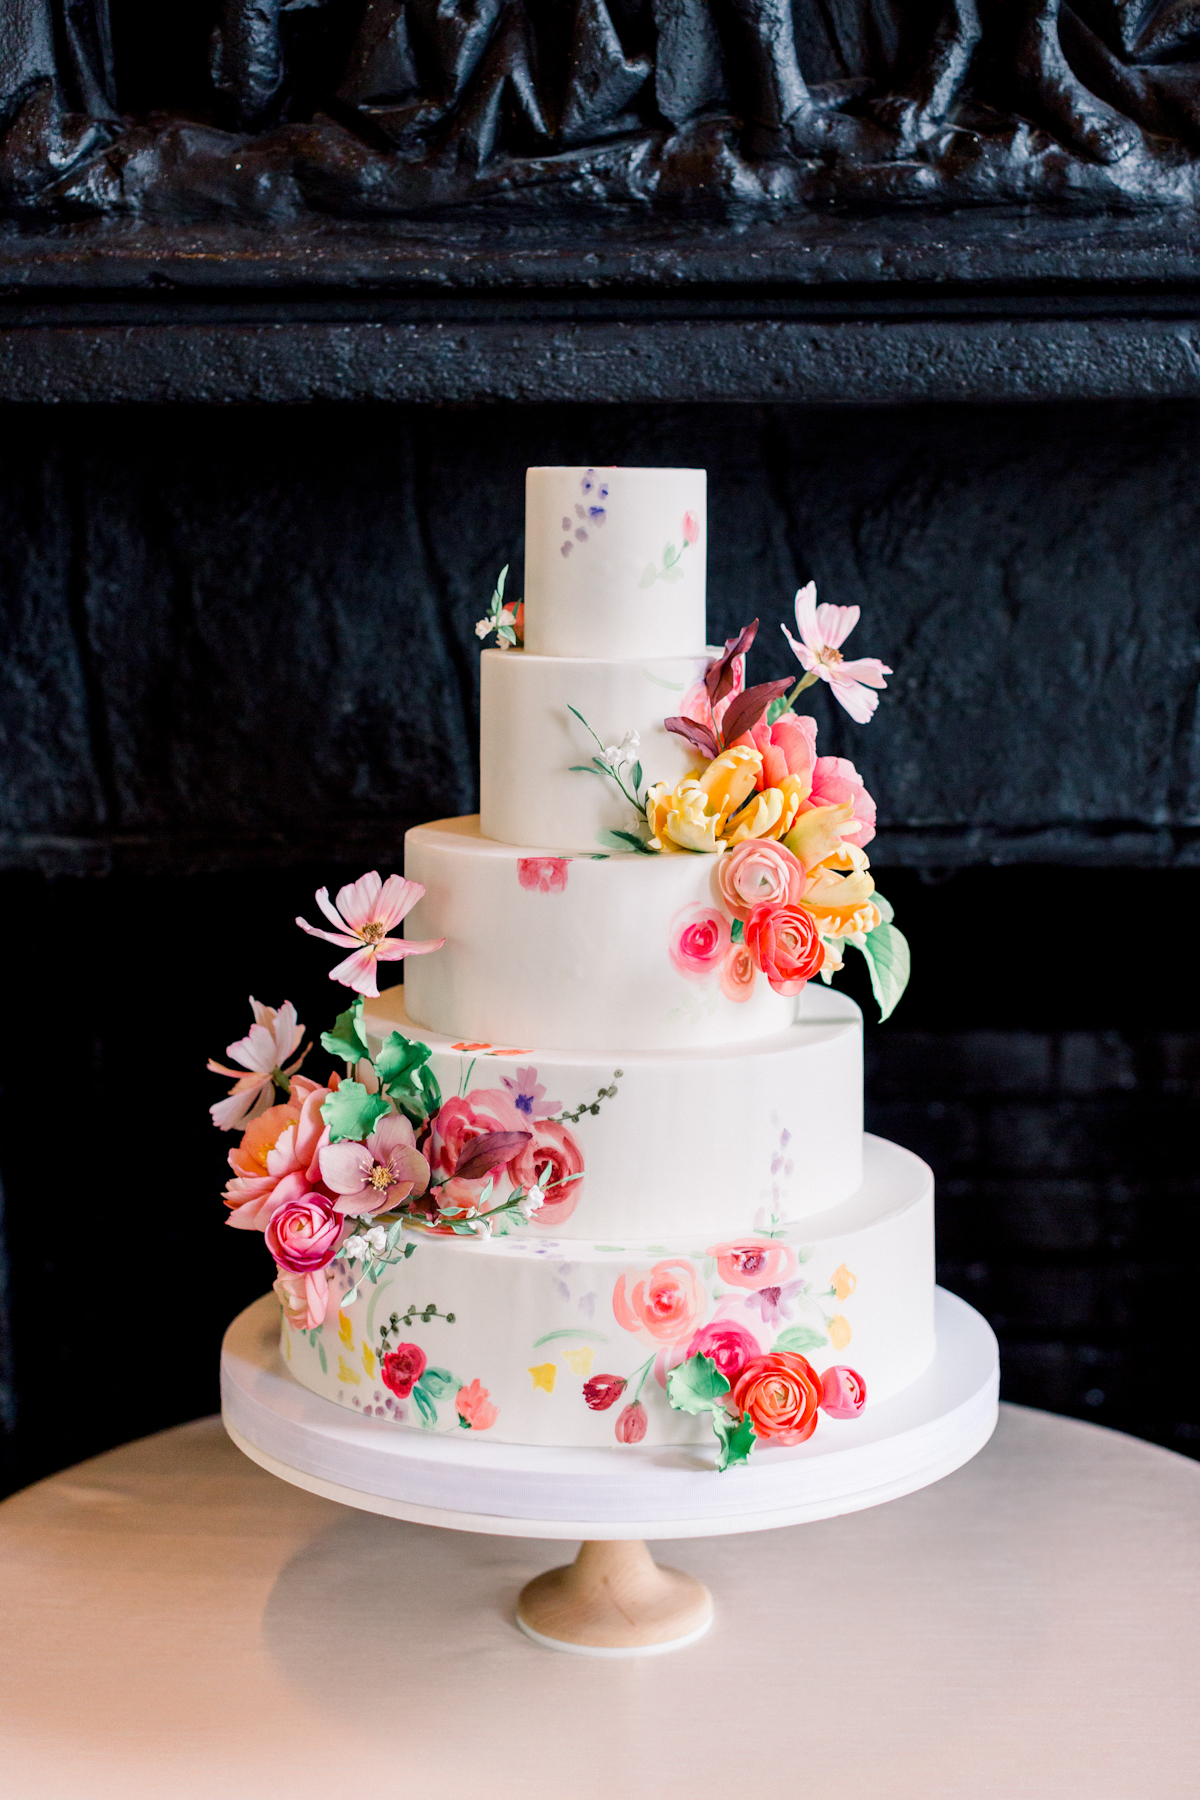 Wave Hill Wedding, photography by Mademoiselle Fiona, wedding planning by Ang Weddings and Events, flowers by Denise Fasanello, cake by Nine Cakes